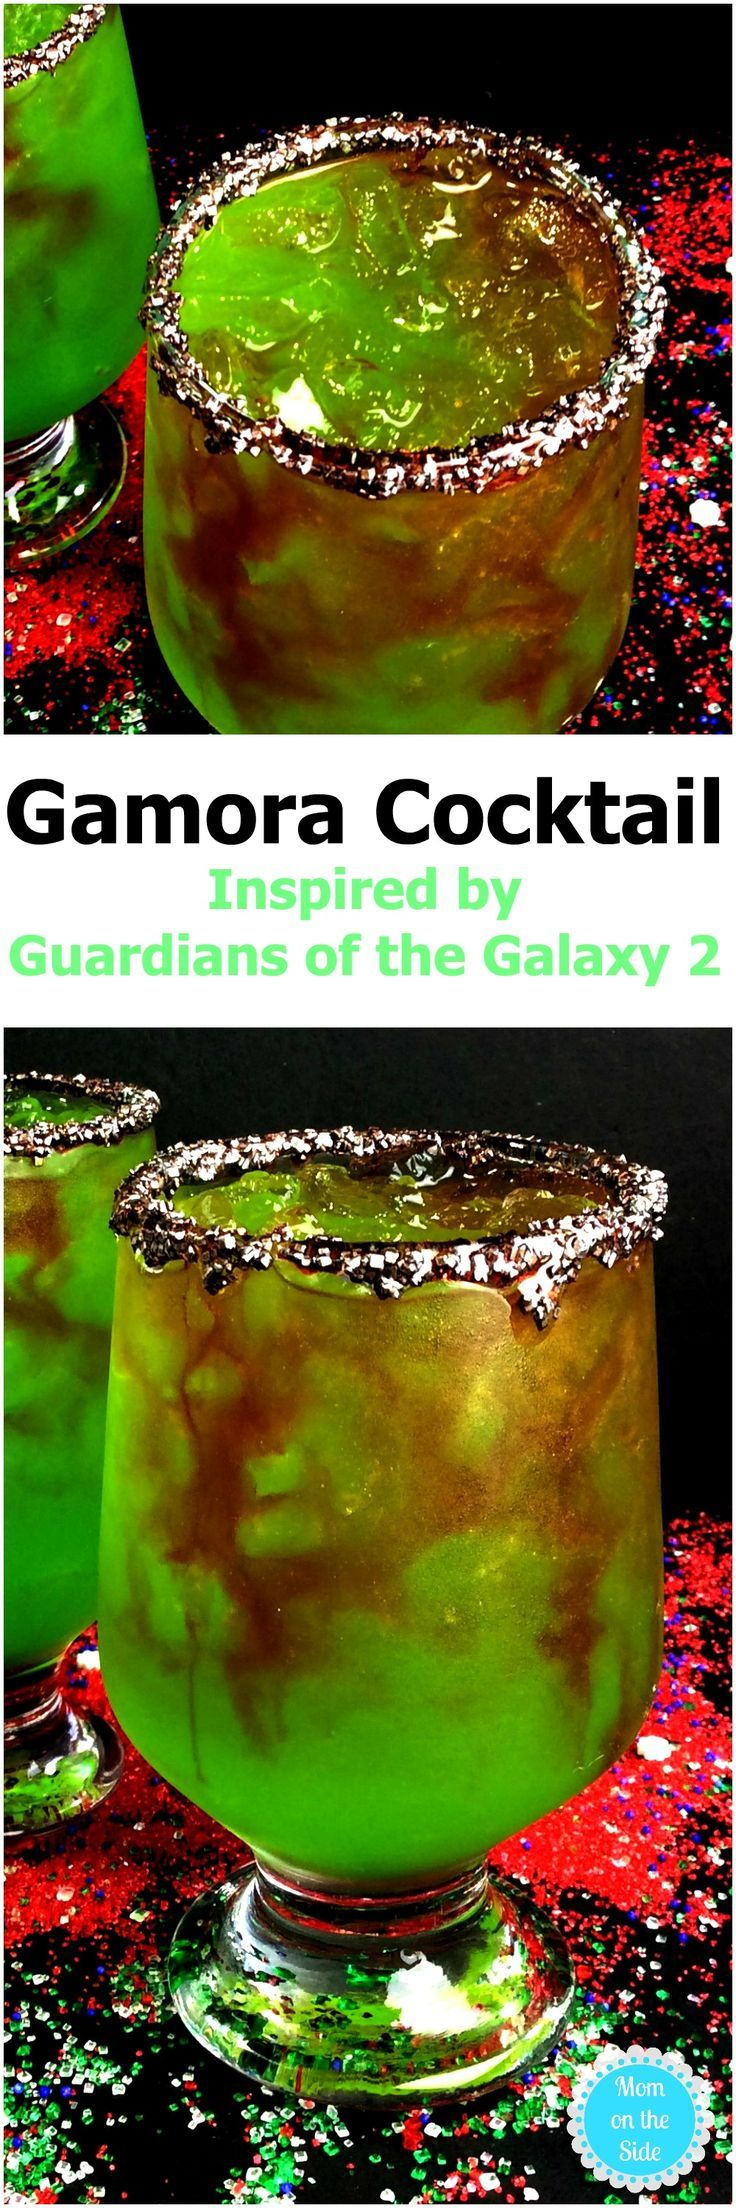 Gamora Cocktail Inspired by Guardians of the Galaxy 2